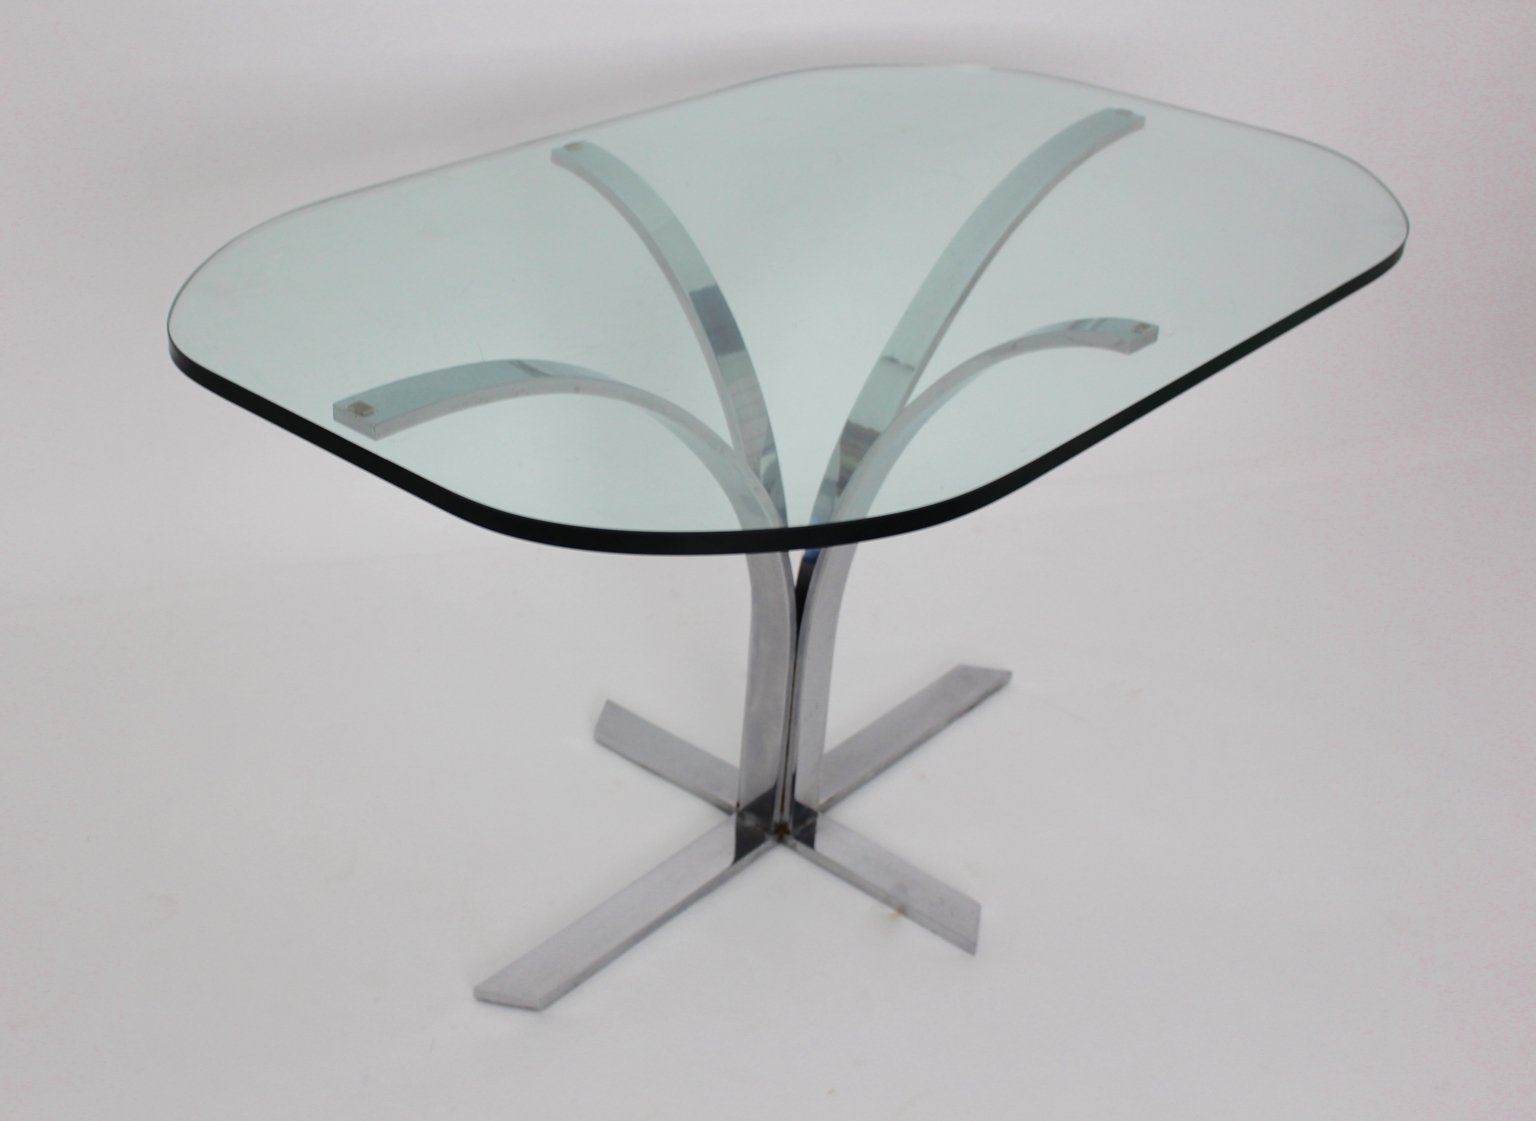 German Glass And Chrome Dining Table, 1960s For Sale At Pamono